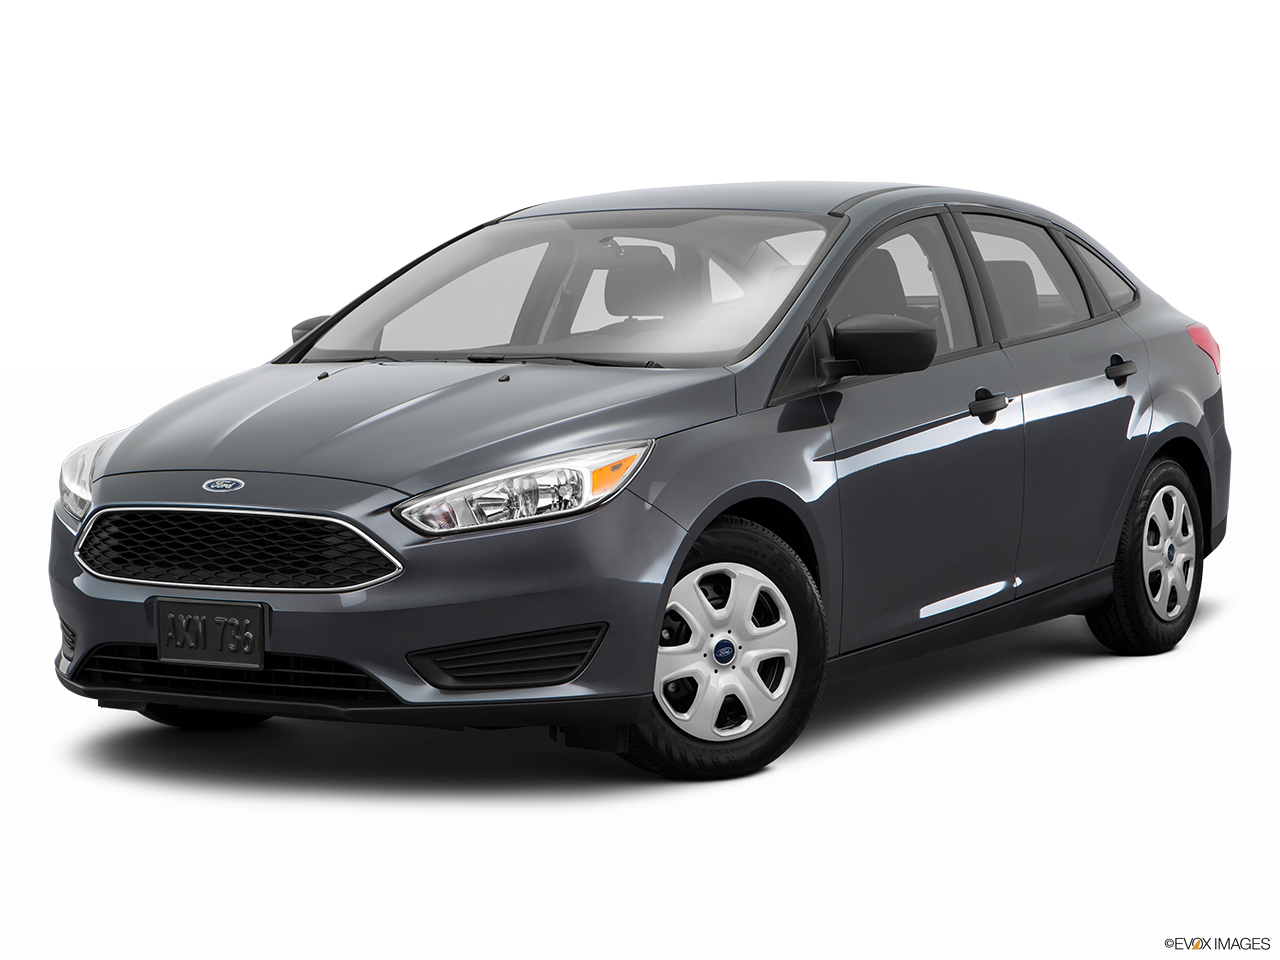 Test Drive A 2016 Ford Focus at Huntington Beach Ford in Huntington Beach